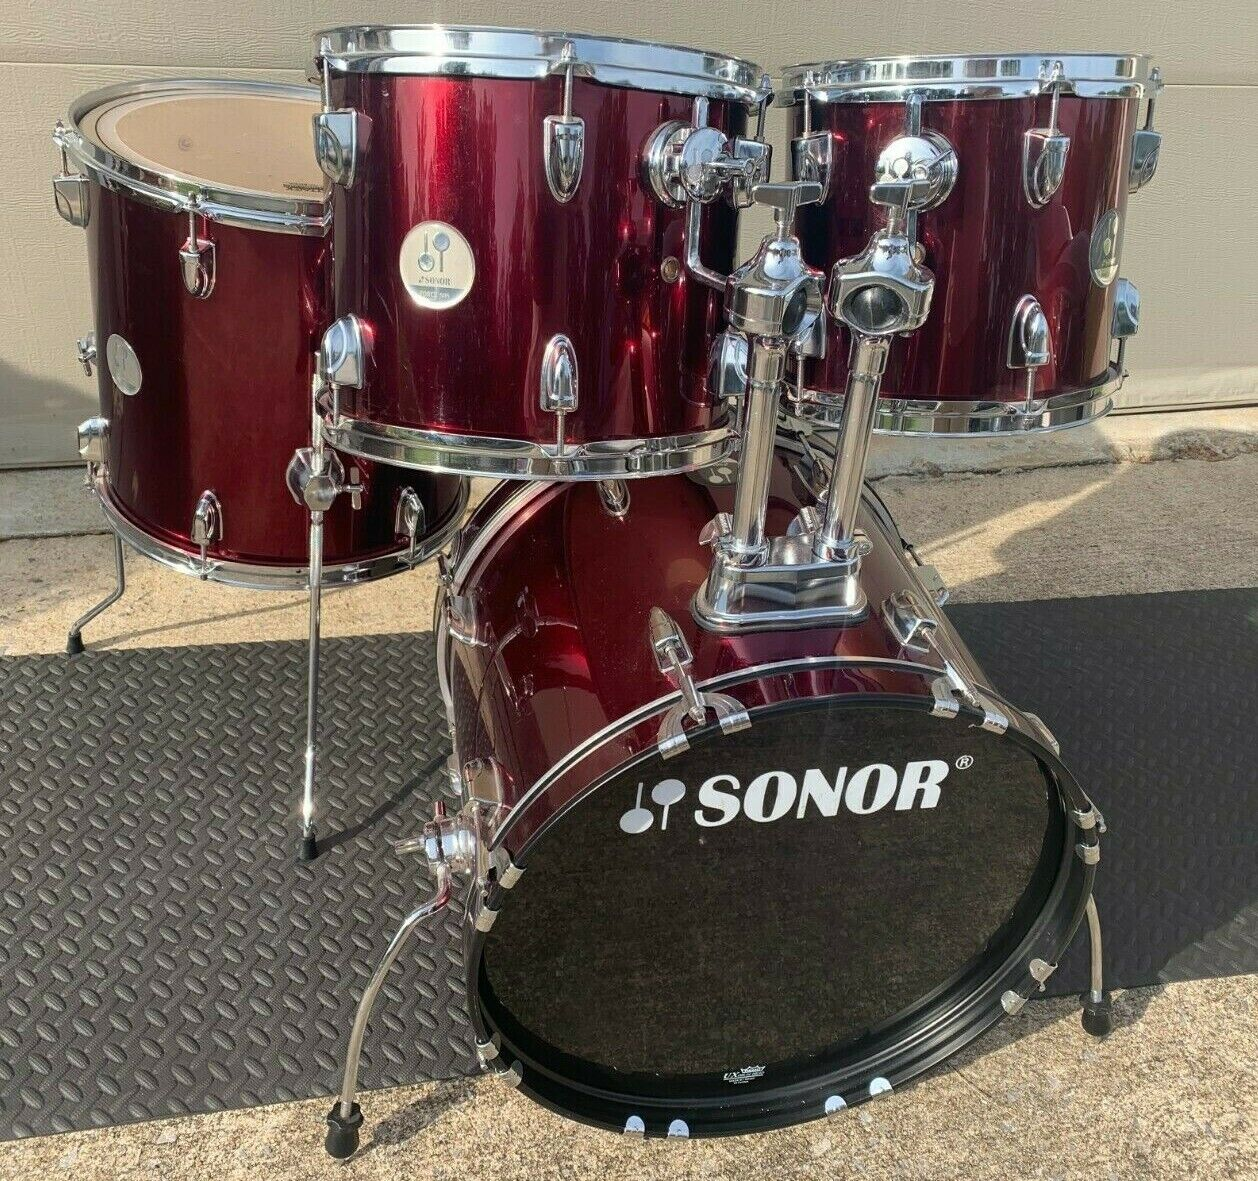 Sonor Force 505 4 Pc Bop Shell Pack - 18 10 12 14  - $225.00